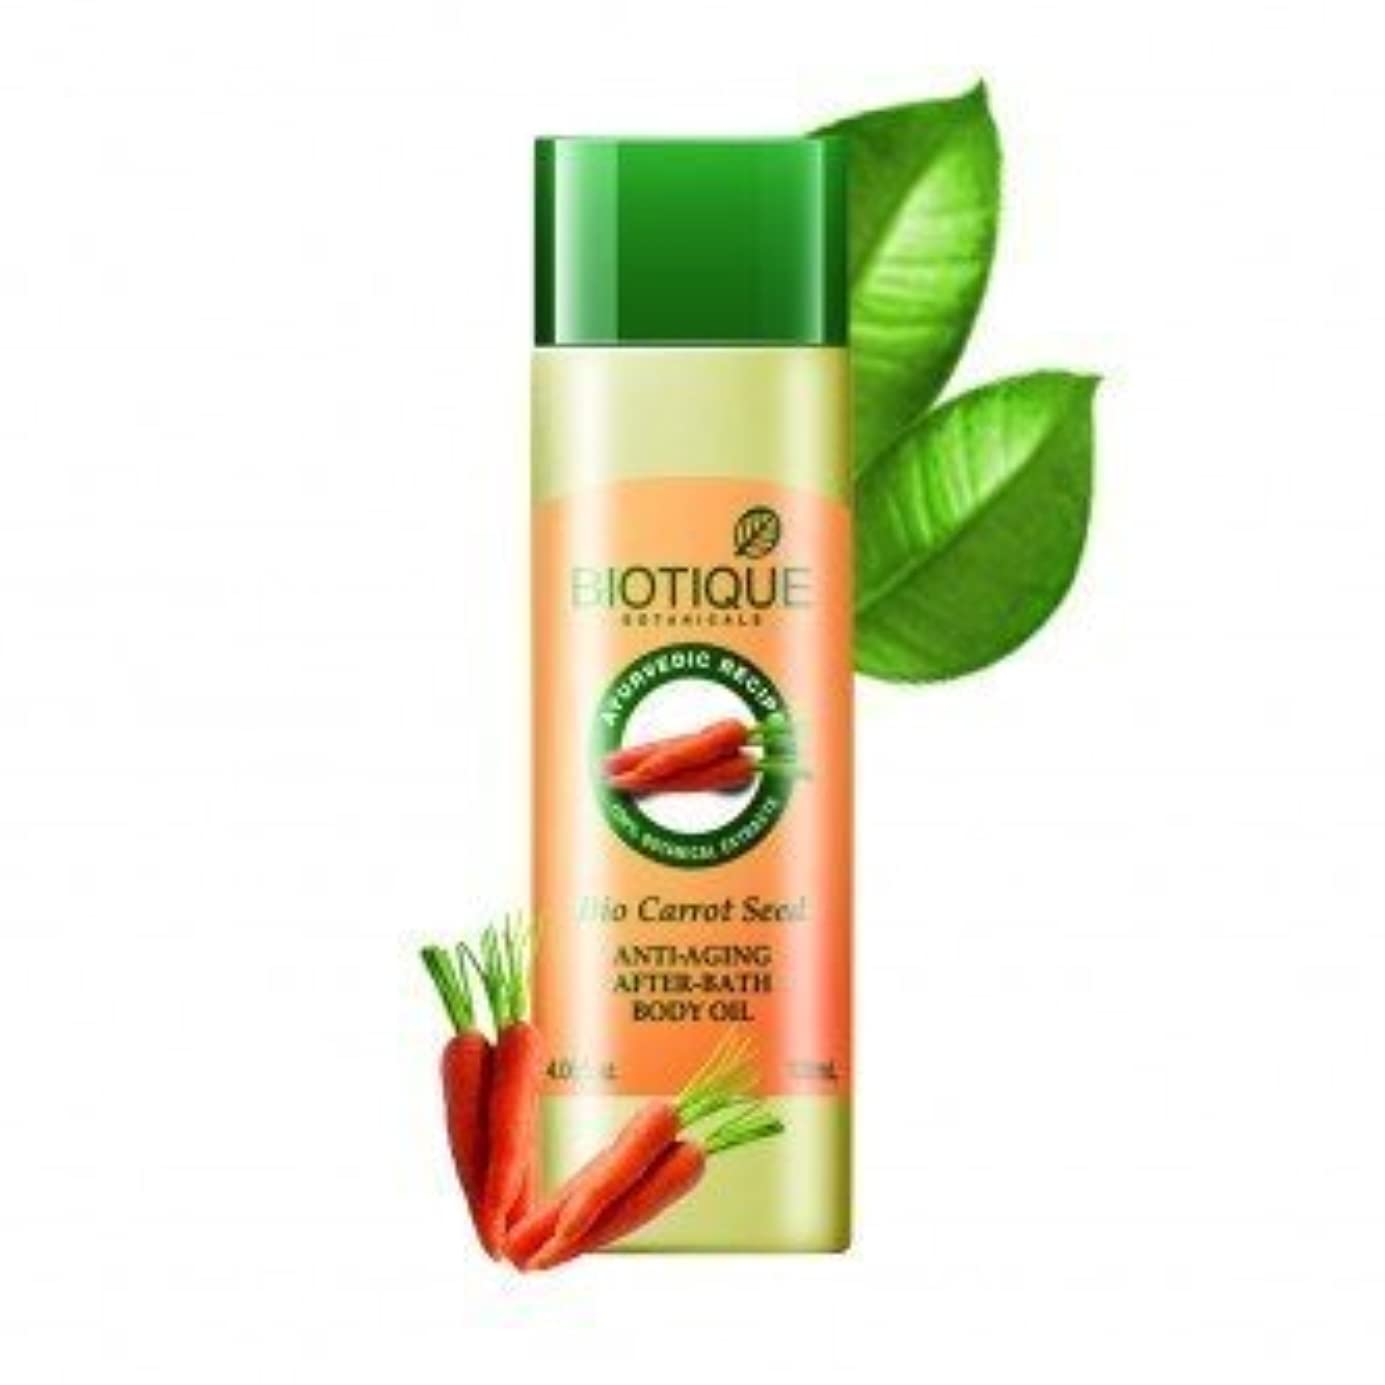 背景お客様かもしれないBiotique Bio Carrot Seed Anti-Aging After-Bath Body Oil 120 Ml (Ship From India)